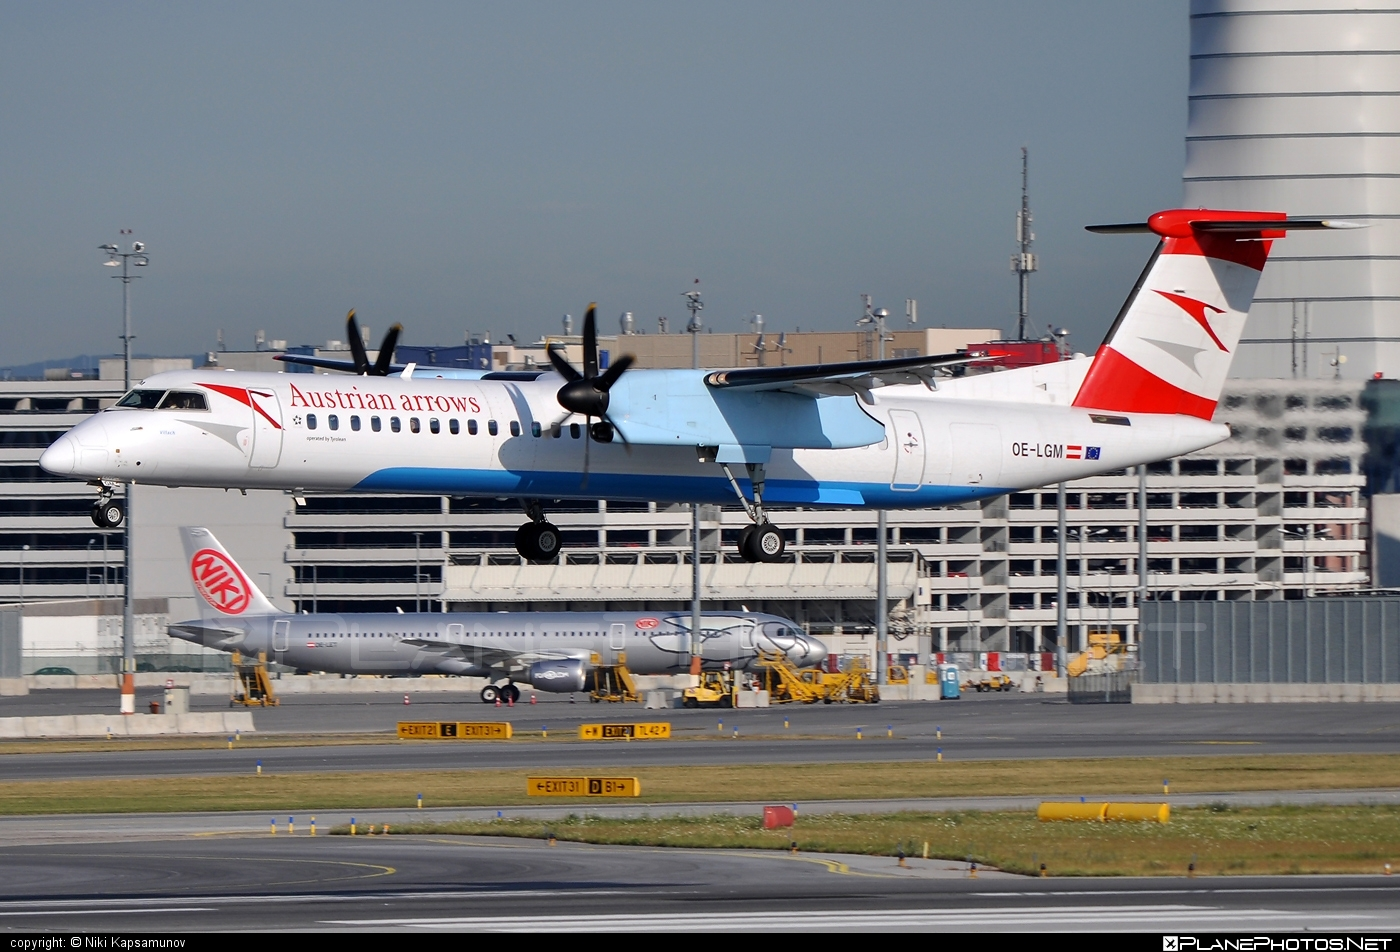 Bombardier DHC-8-Q402 Dash 8 - OE-LGM operated by Austrian arrows (Tyrolean Airways) #bombardier #dash8 #dhc8 #dhc8q402